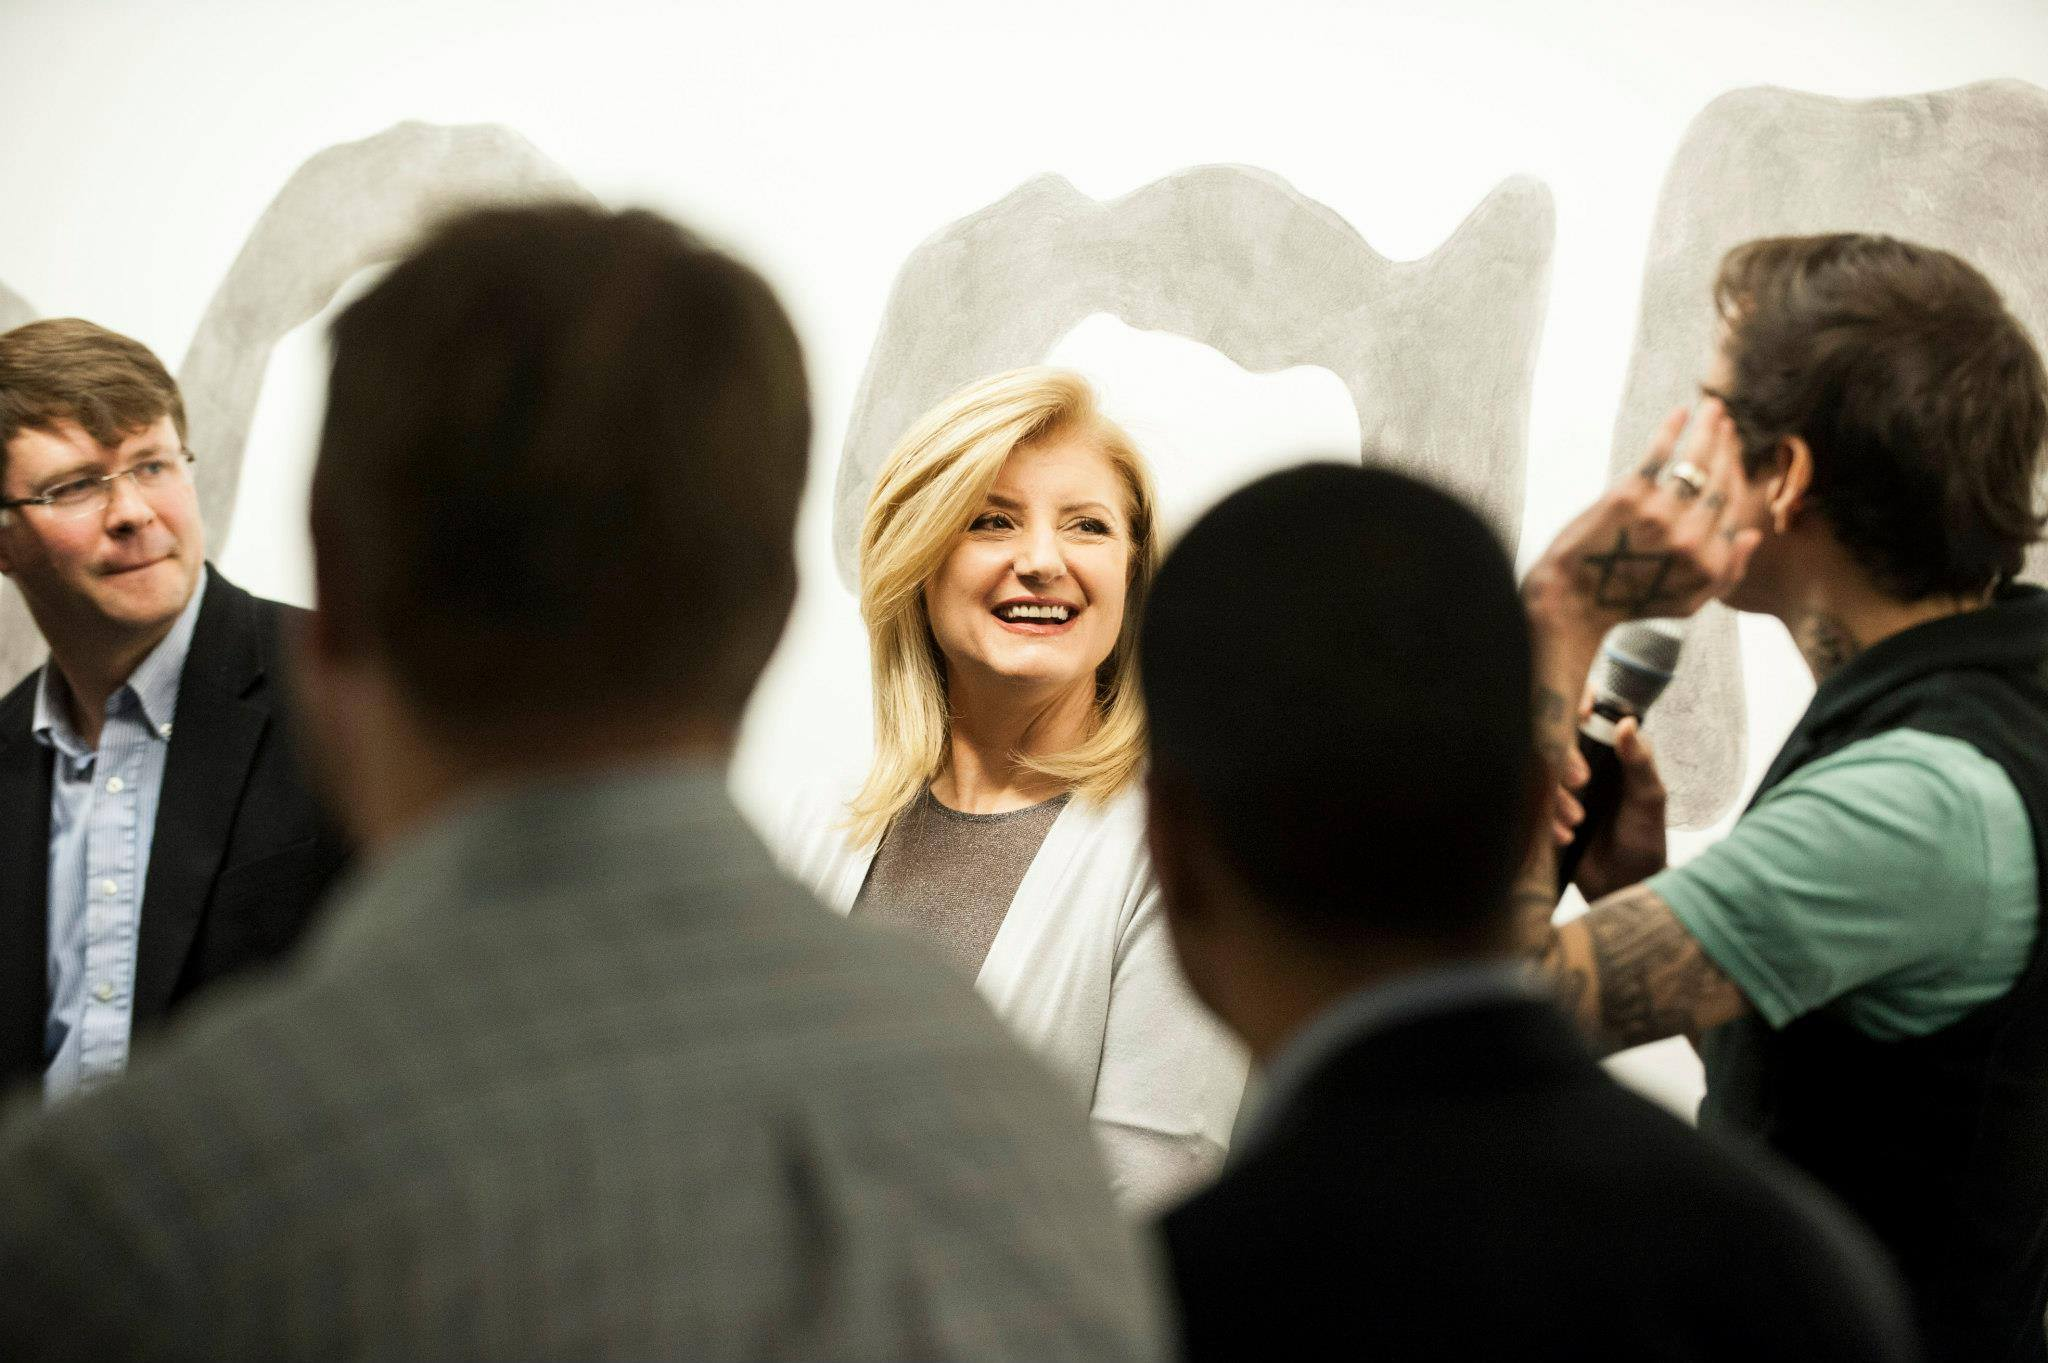 Arianna Huffington at an interview with AOL executive team